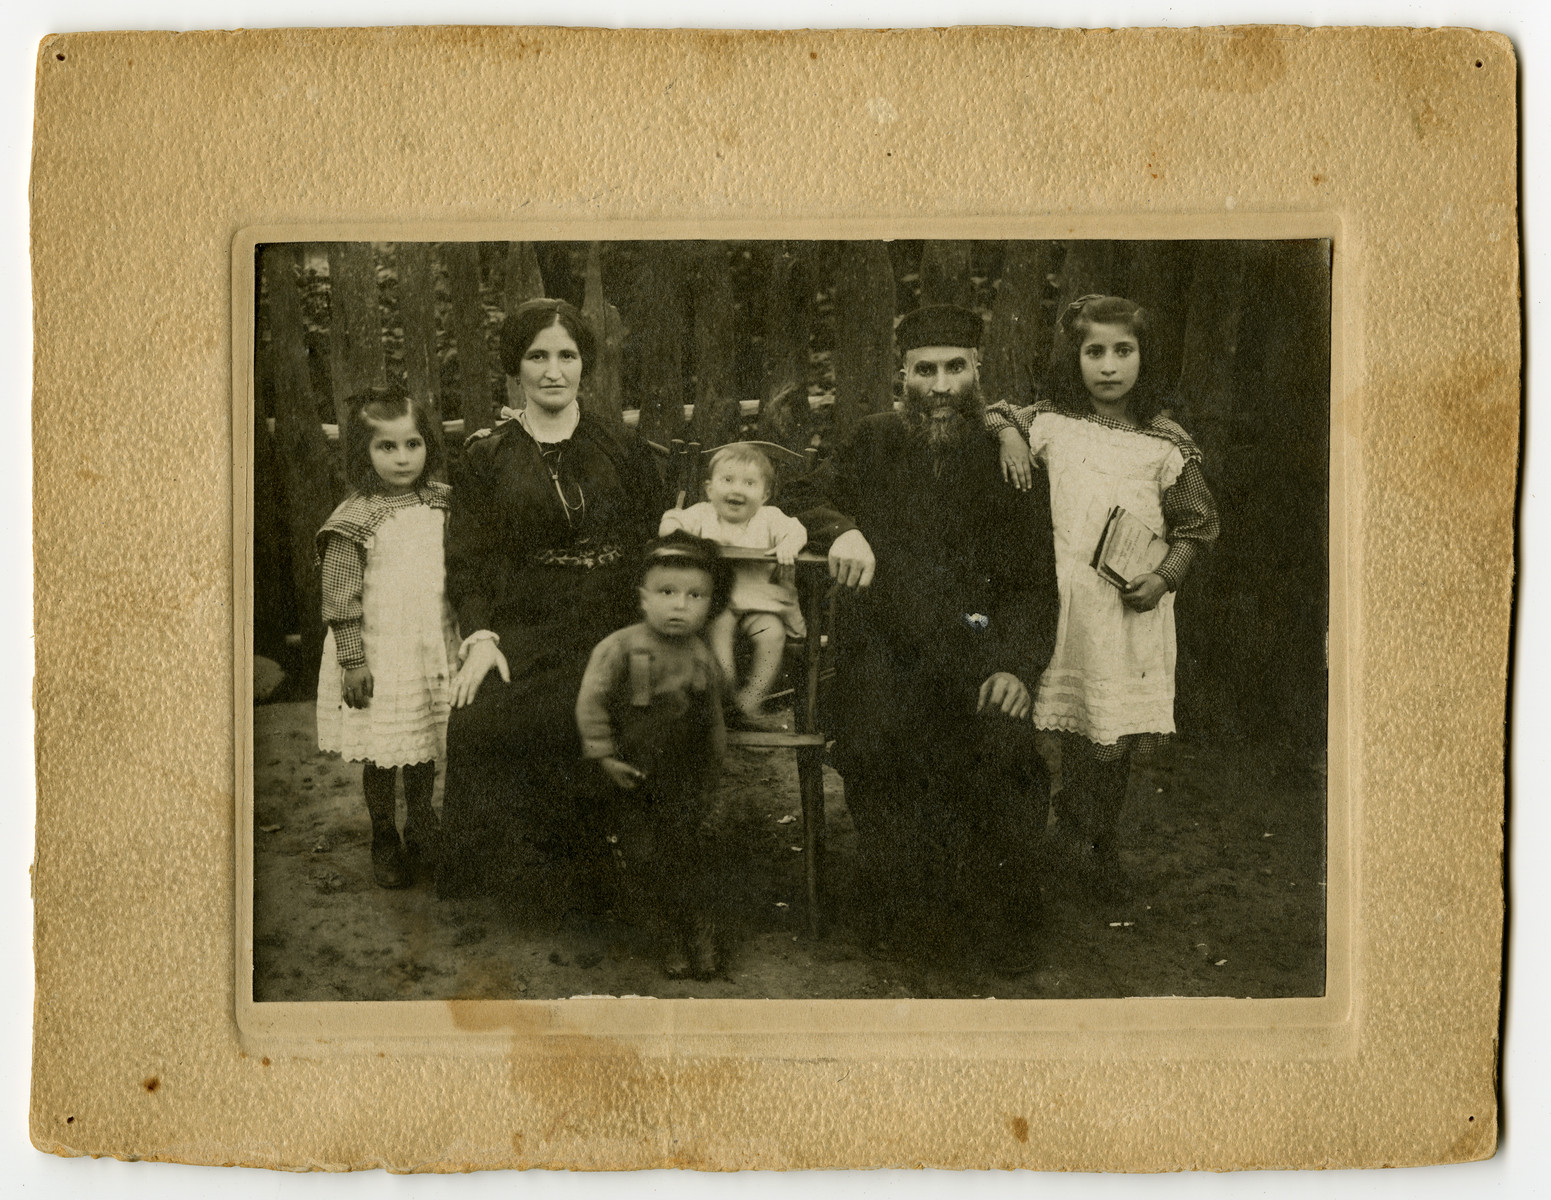 Moshe and Krjndel Mirla family pose in their garden with three of their children.  Miriam Mirla is pictured on the far right.